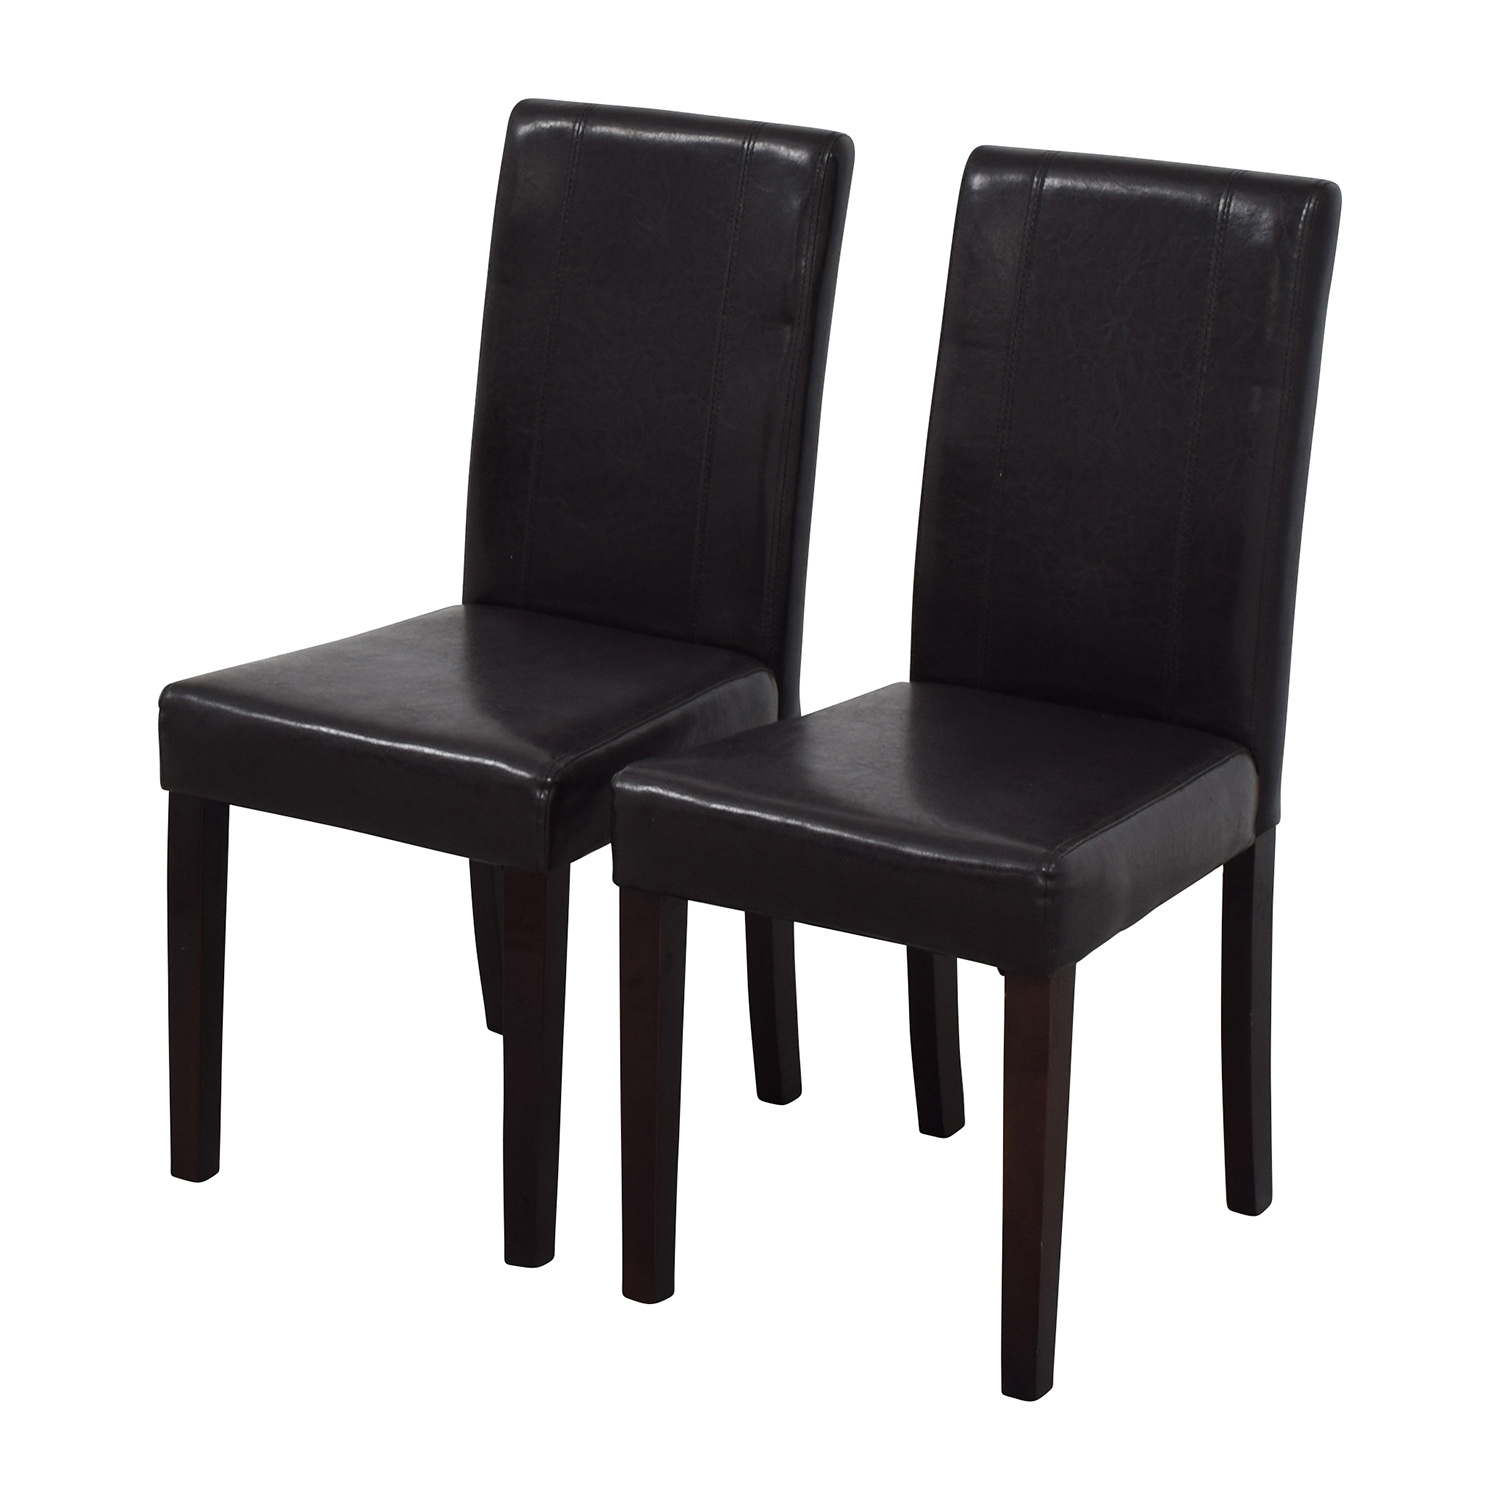 Roundhill Roundhill Solid Wood Leatherette Padded Parson Chairs Dining Chairs